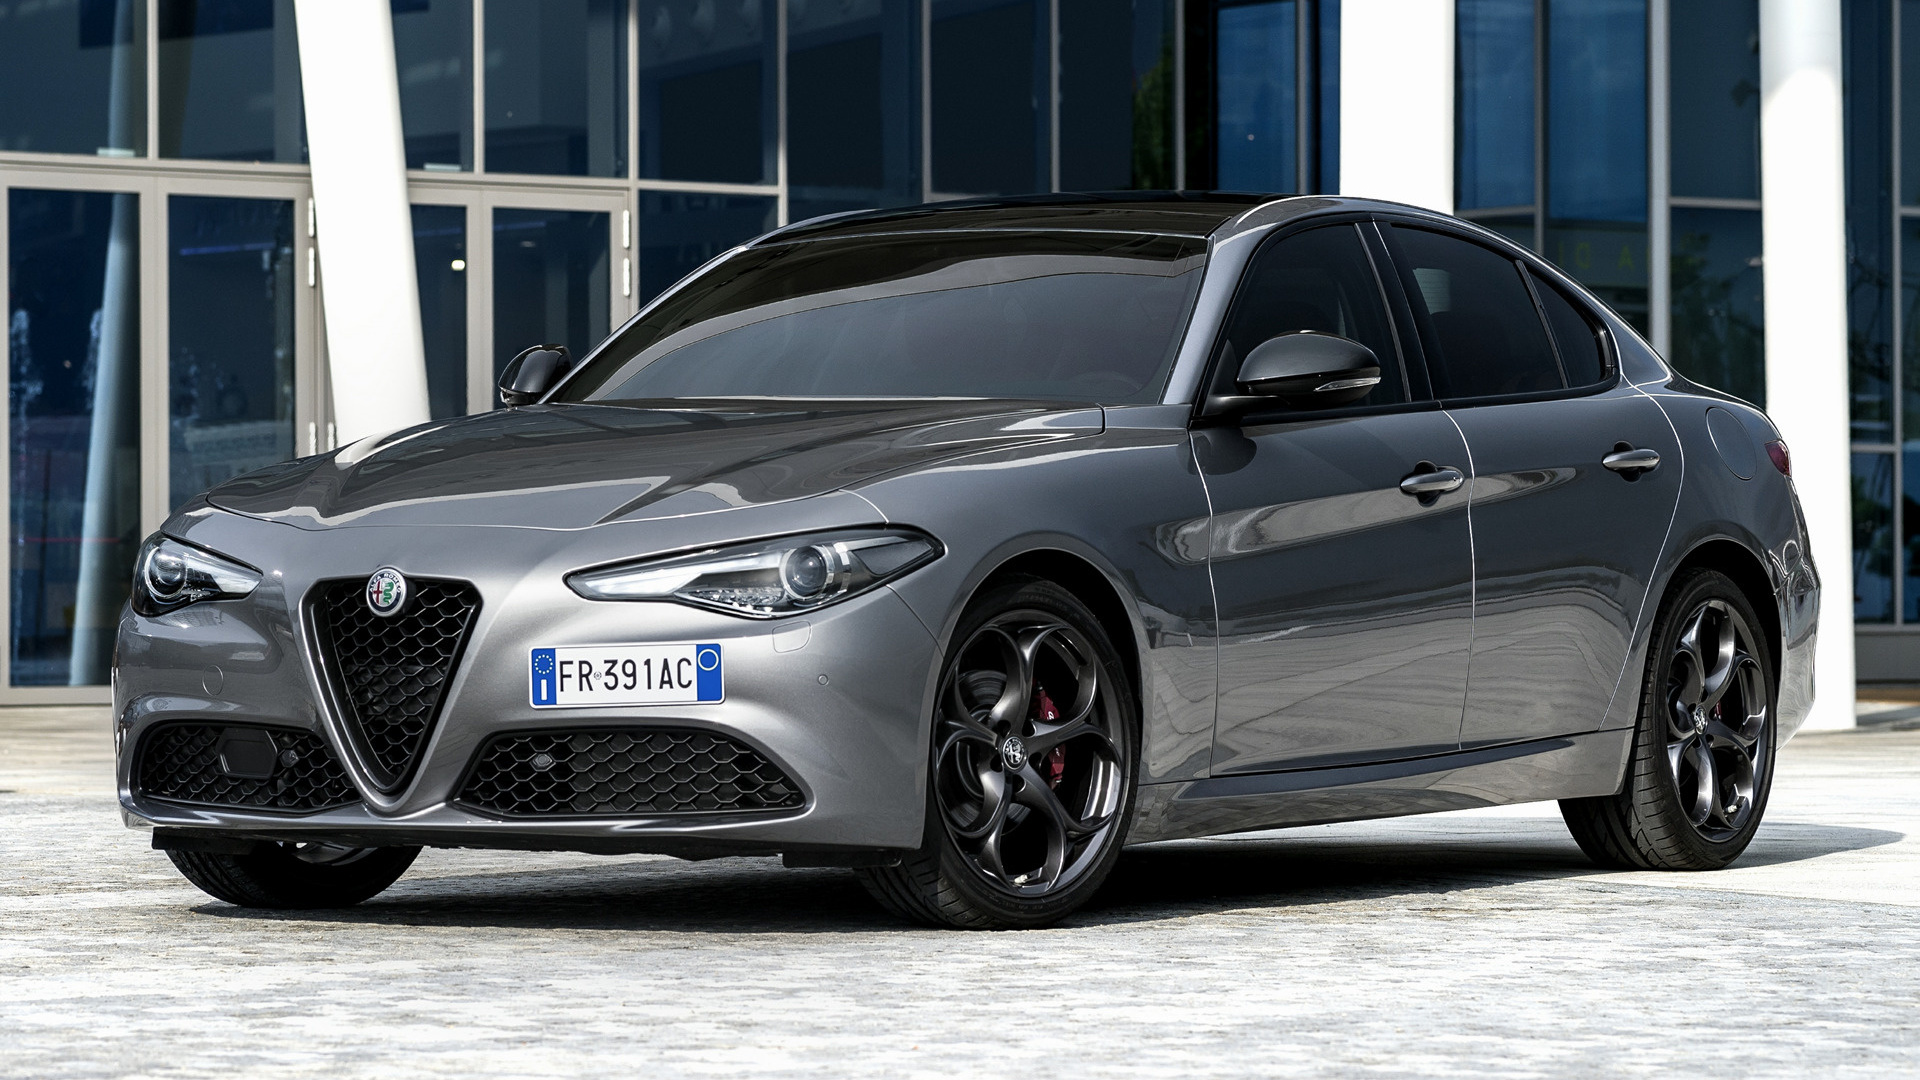 Sport Chrysler Jeep Dodge Ram >> 2018 Alfa Romeo Giulia B-Tech - Wallpapers and HD Images ...